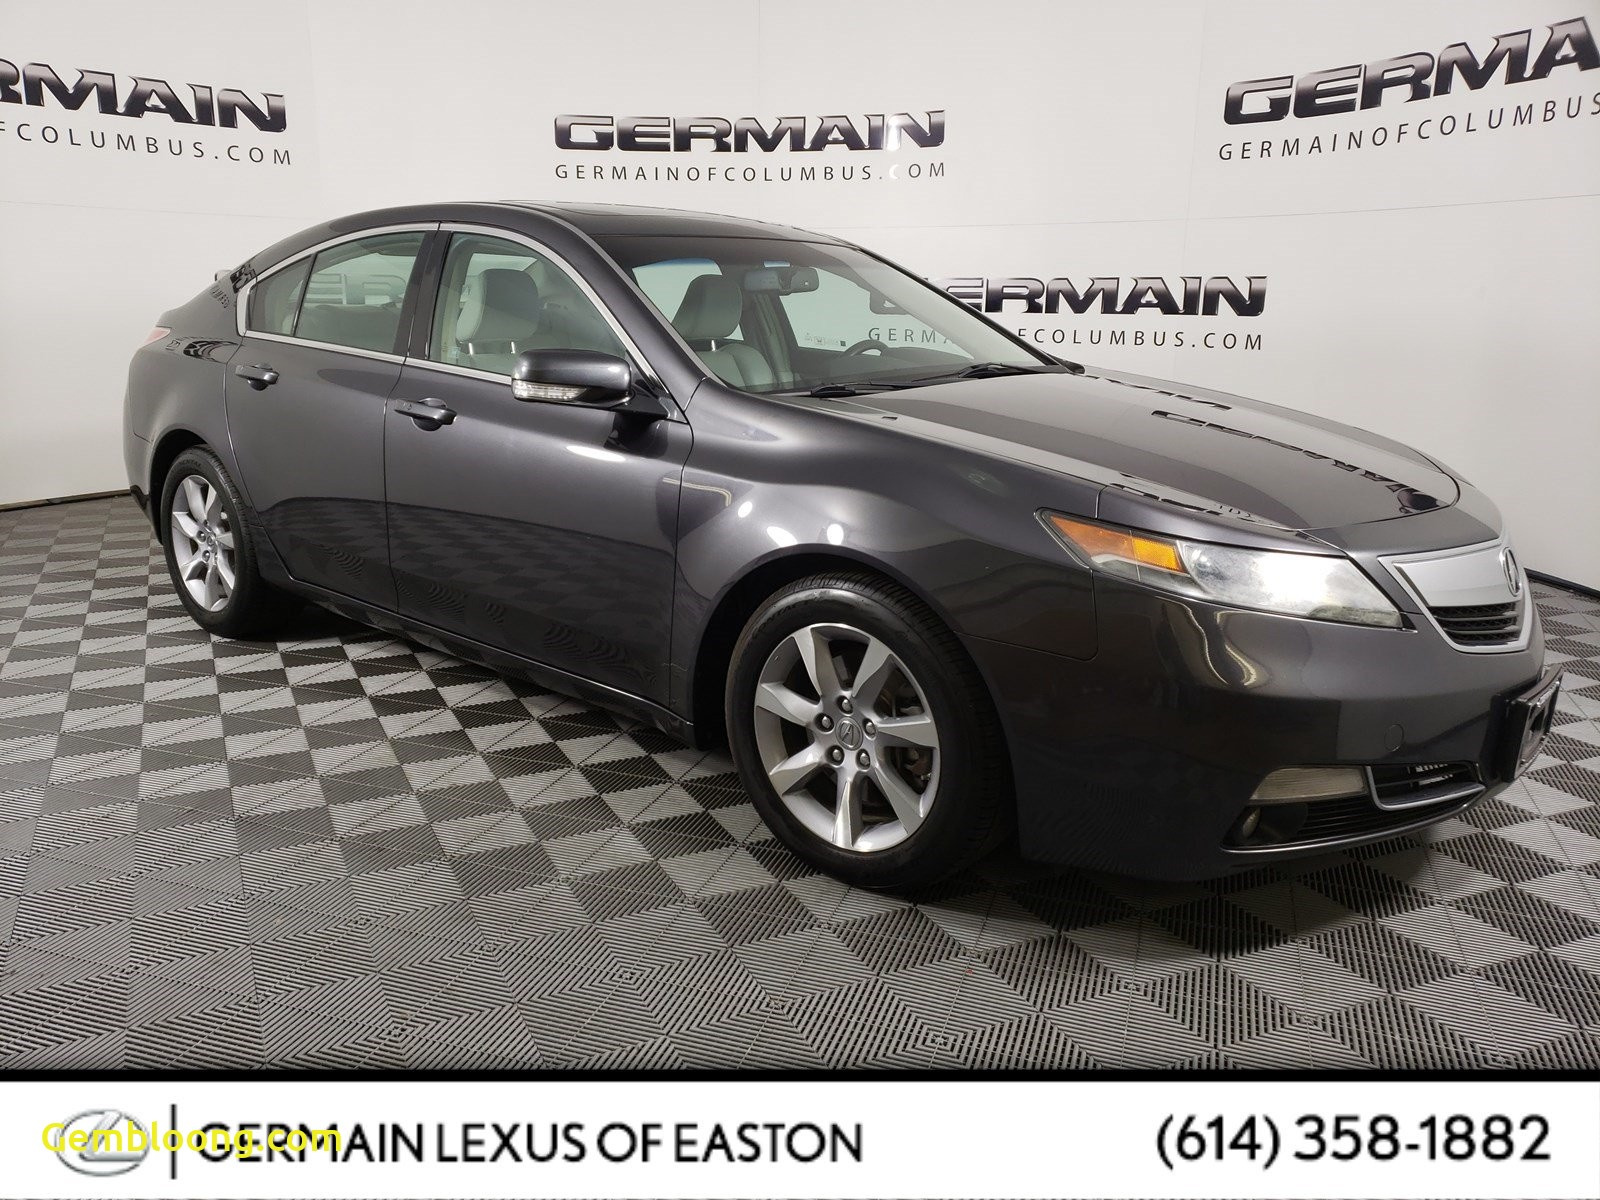 2012 Acura Tsx New Pre Owned 2012 Acura Tl Tech Auto with Navigation